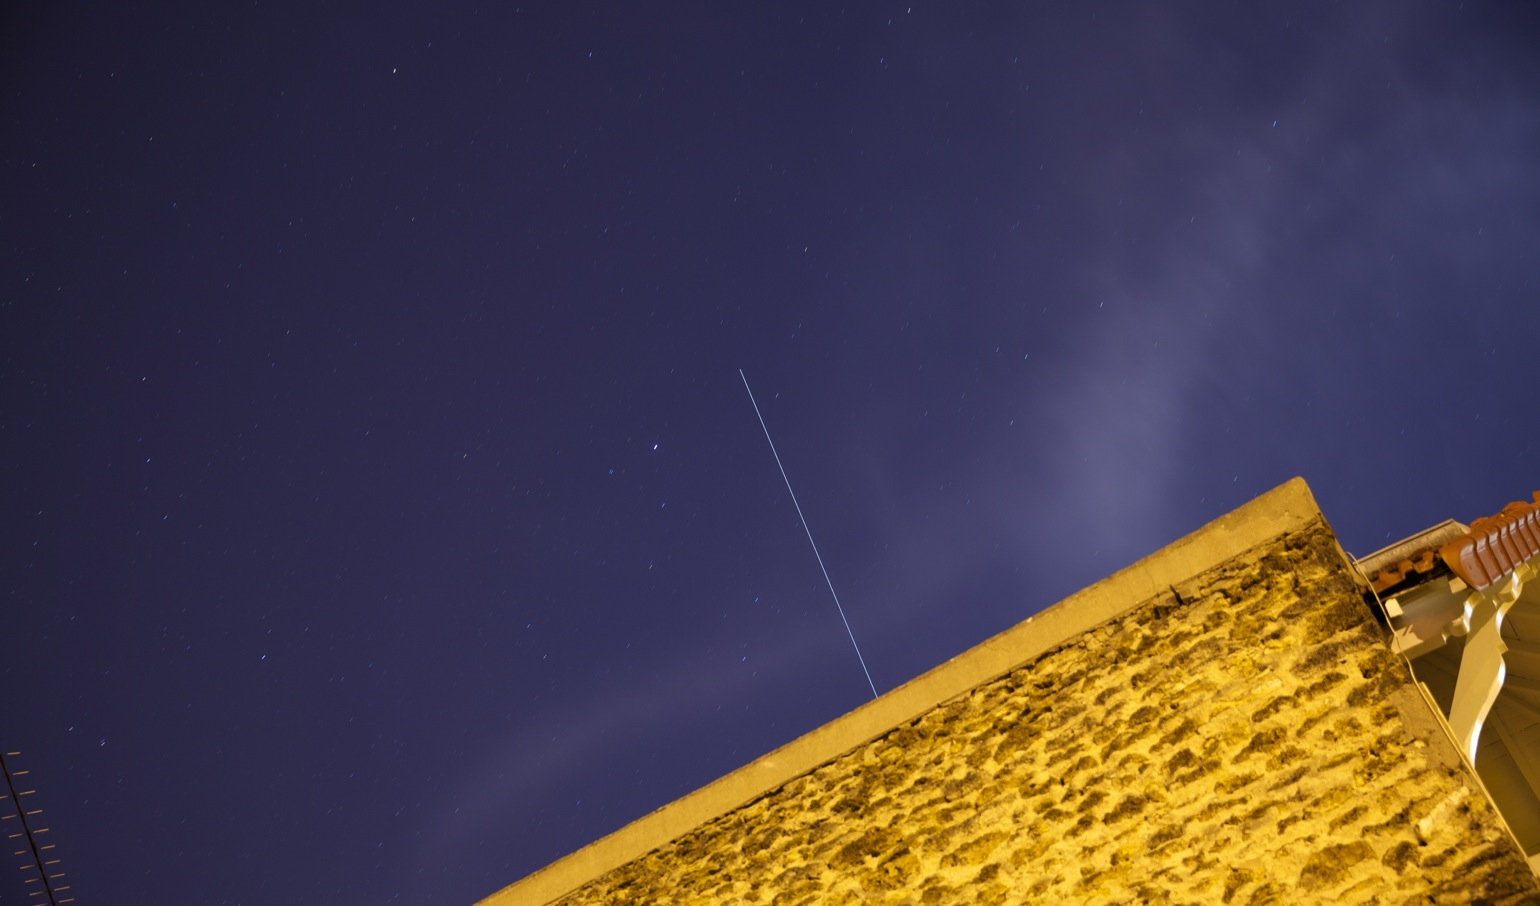 ISS on the 13th of June, 2